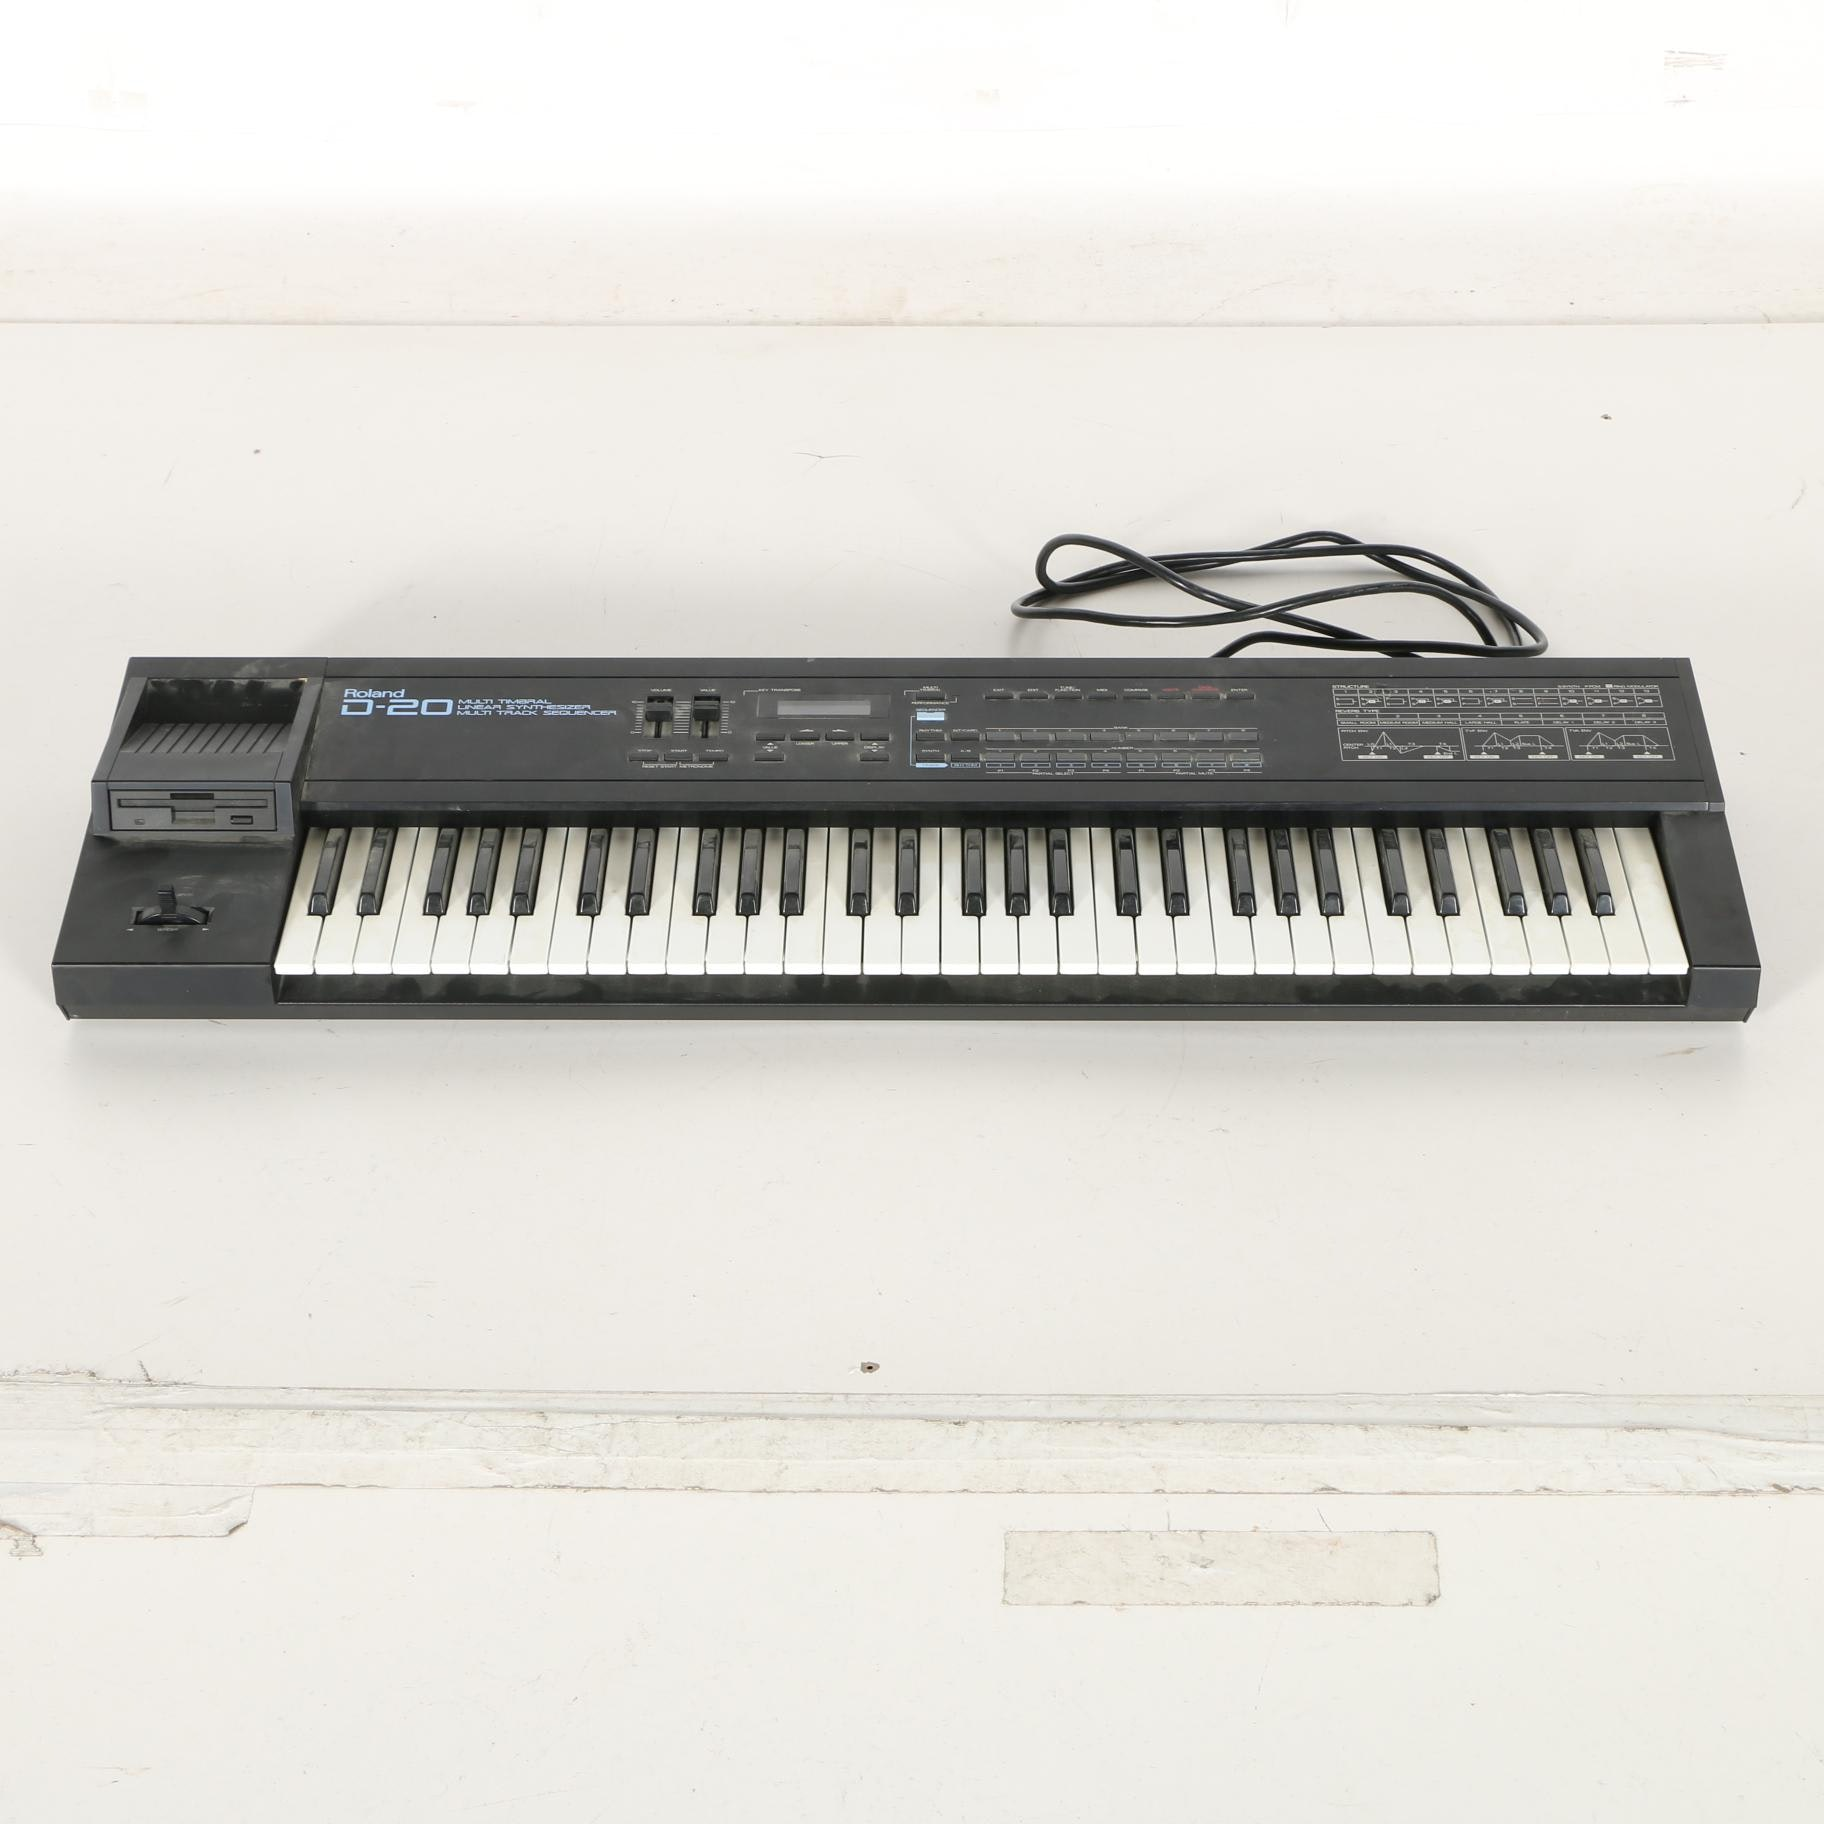 Vintage Roland D-20 Synthesizer and Multi-Track Sequencer